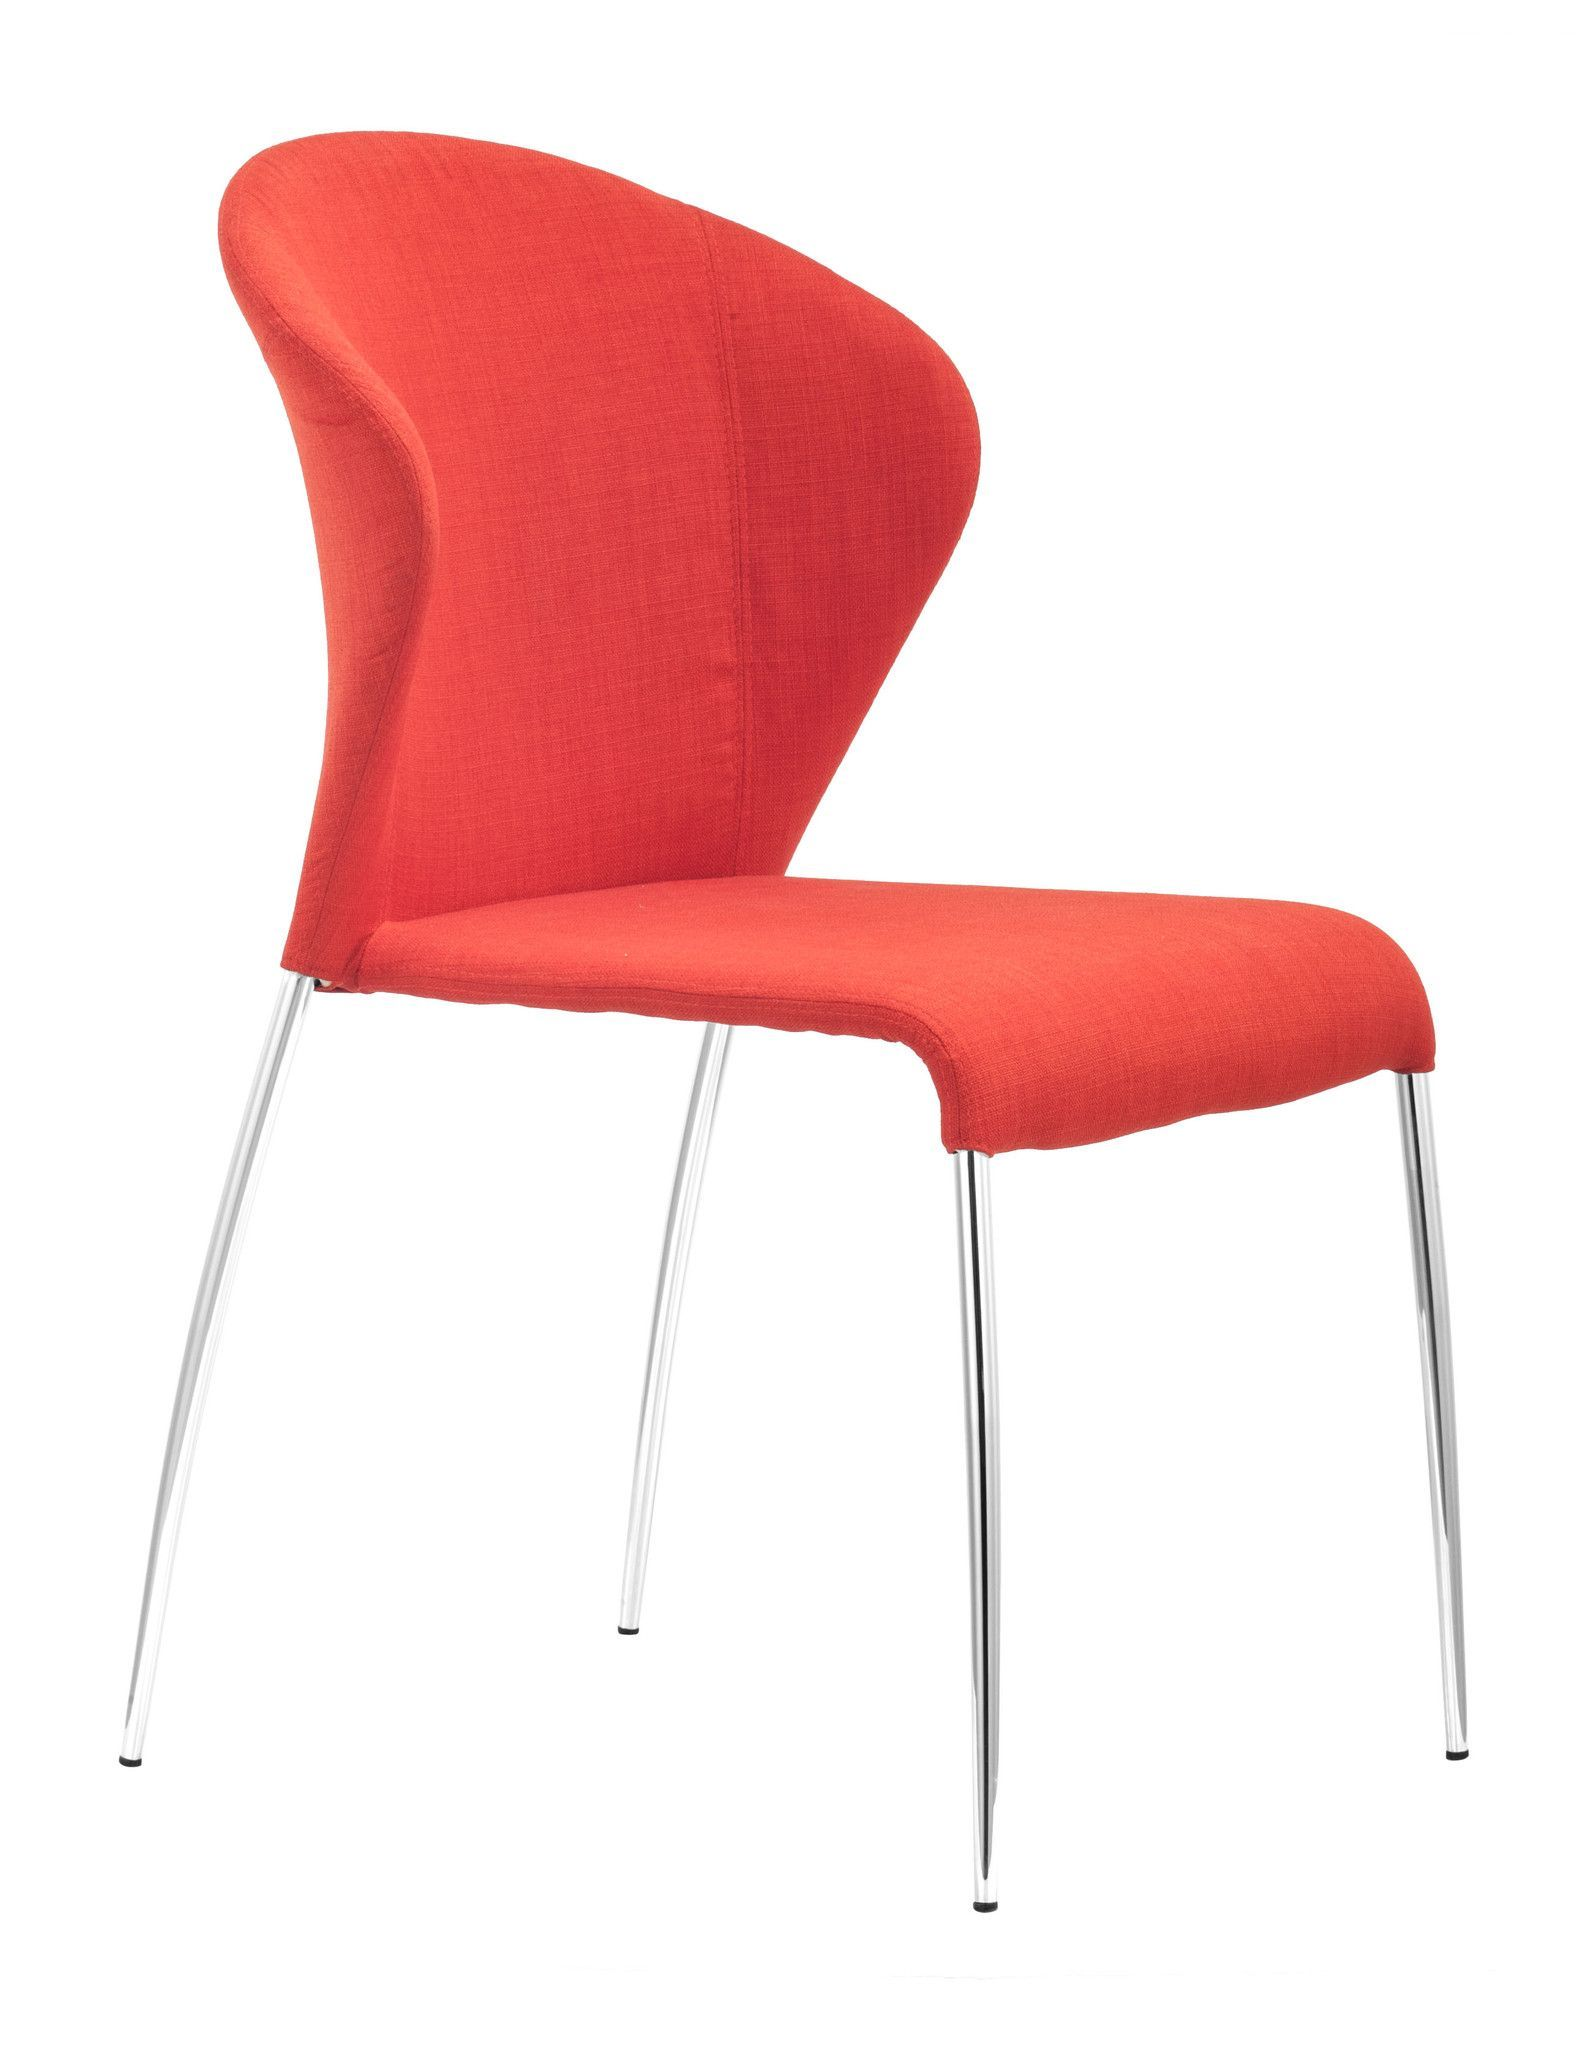 Zuo Modern Oulu Dining Chair With Chrome Legs Gray Red Orange